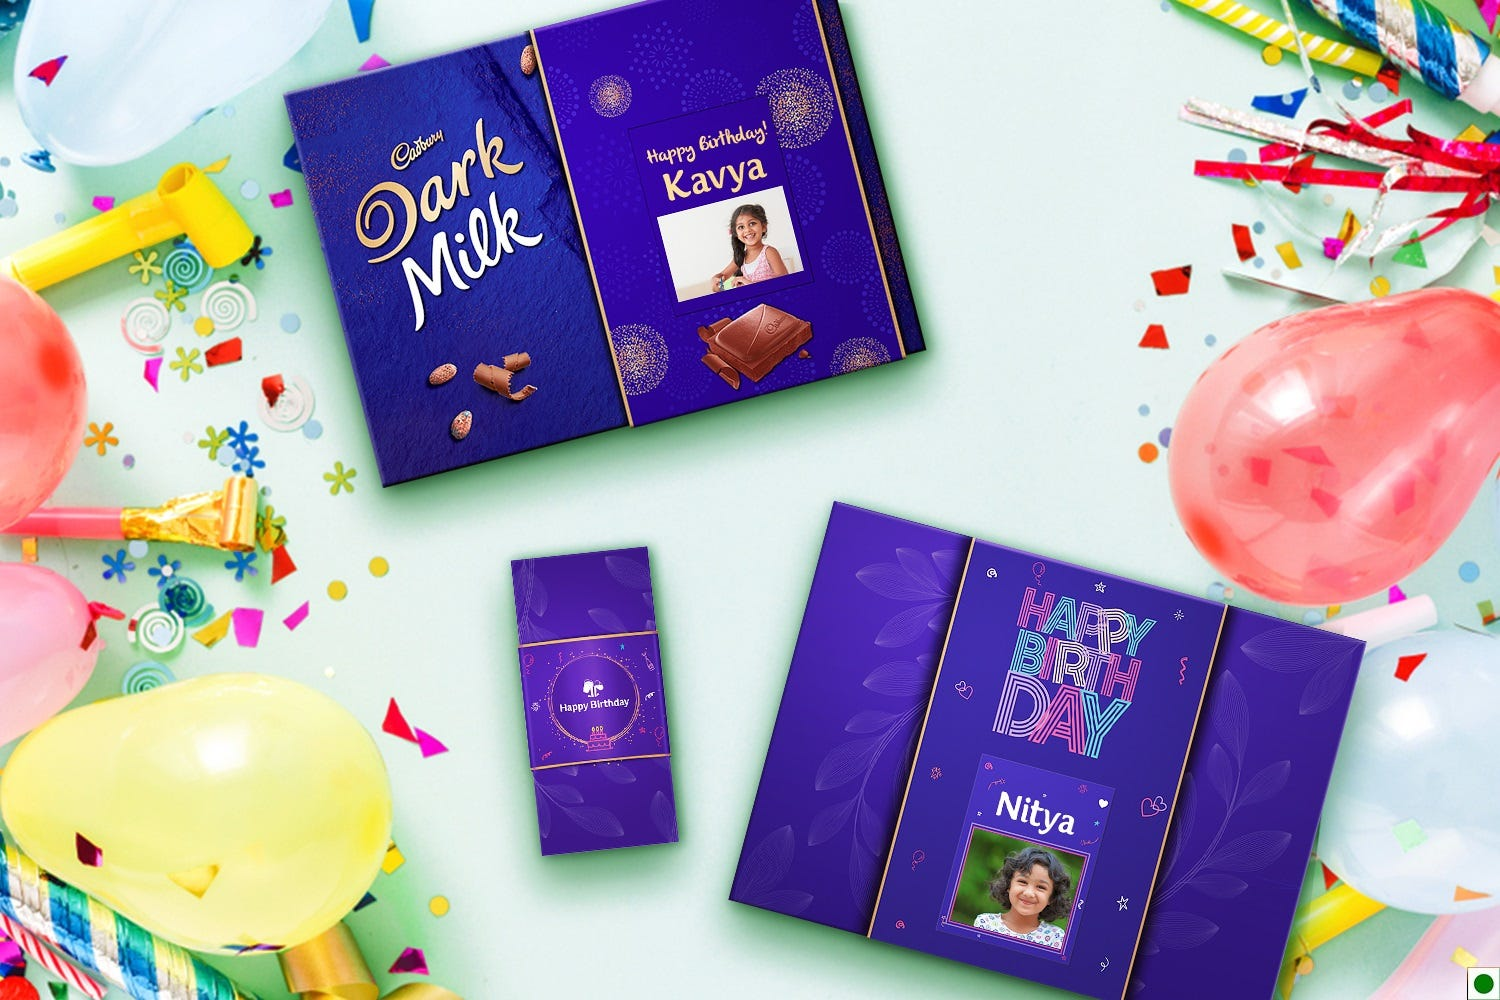 5 Chocolate Themed Birthday Return Gift Ideas For Kids Cadbury Gifting India Joy Deliveries